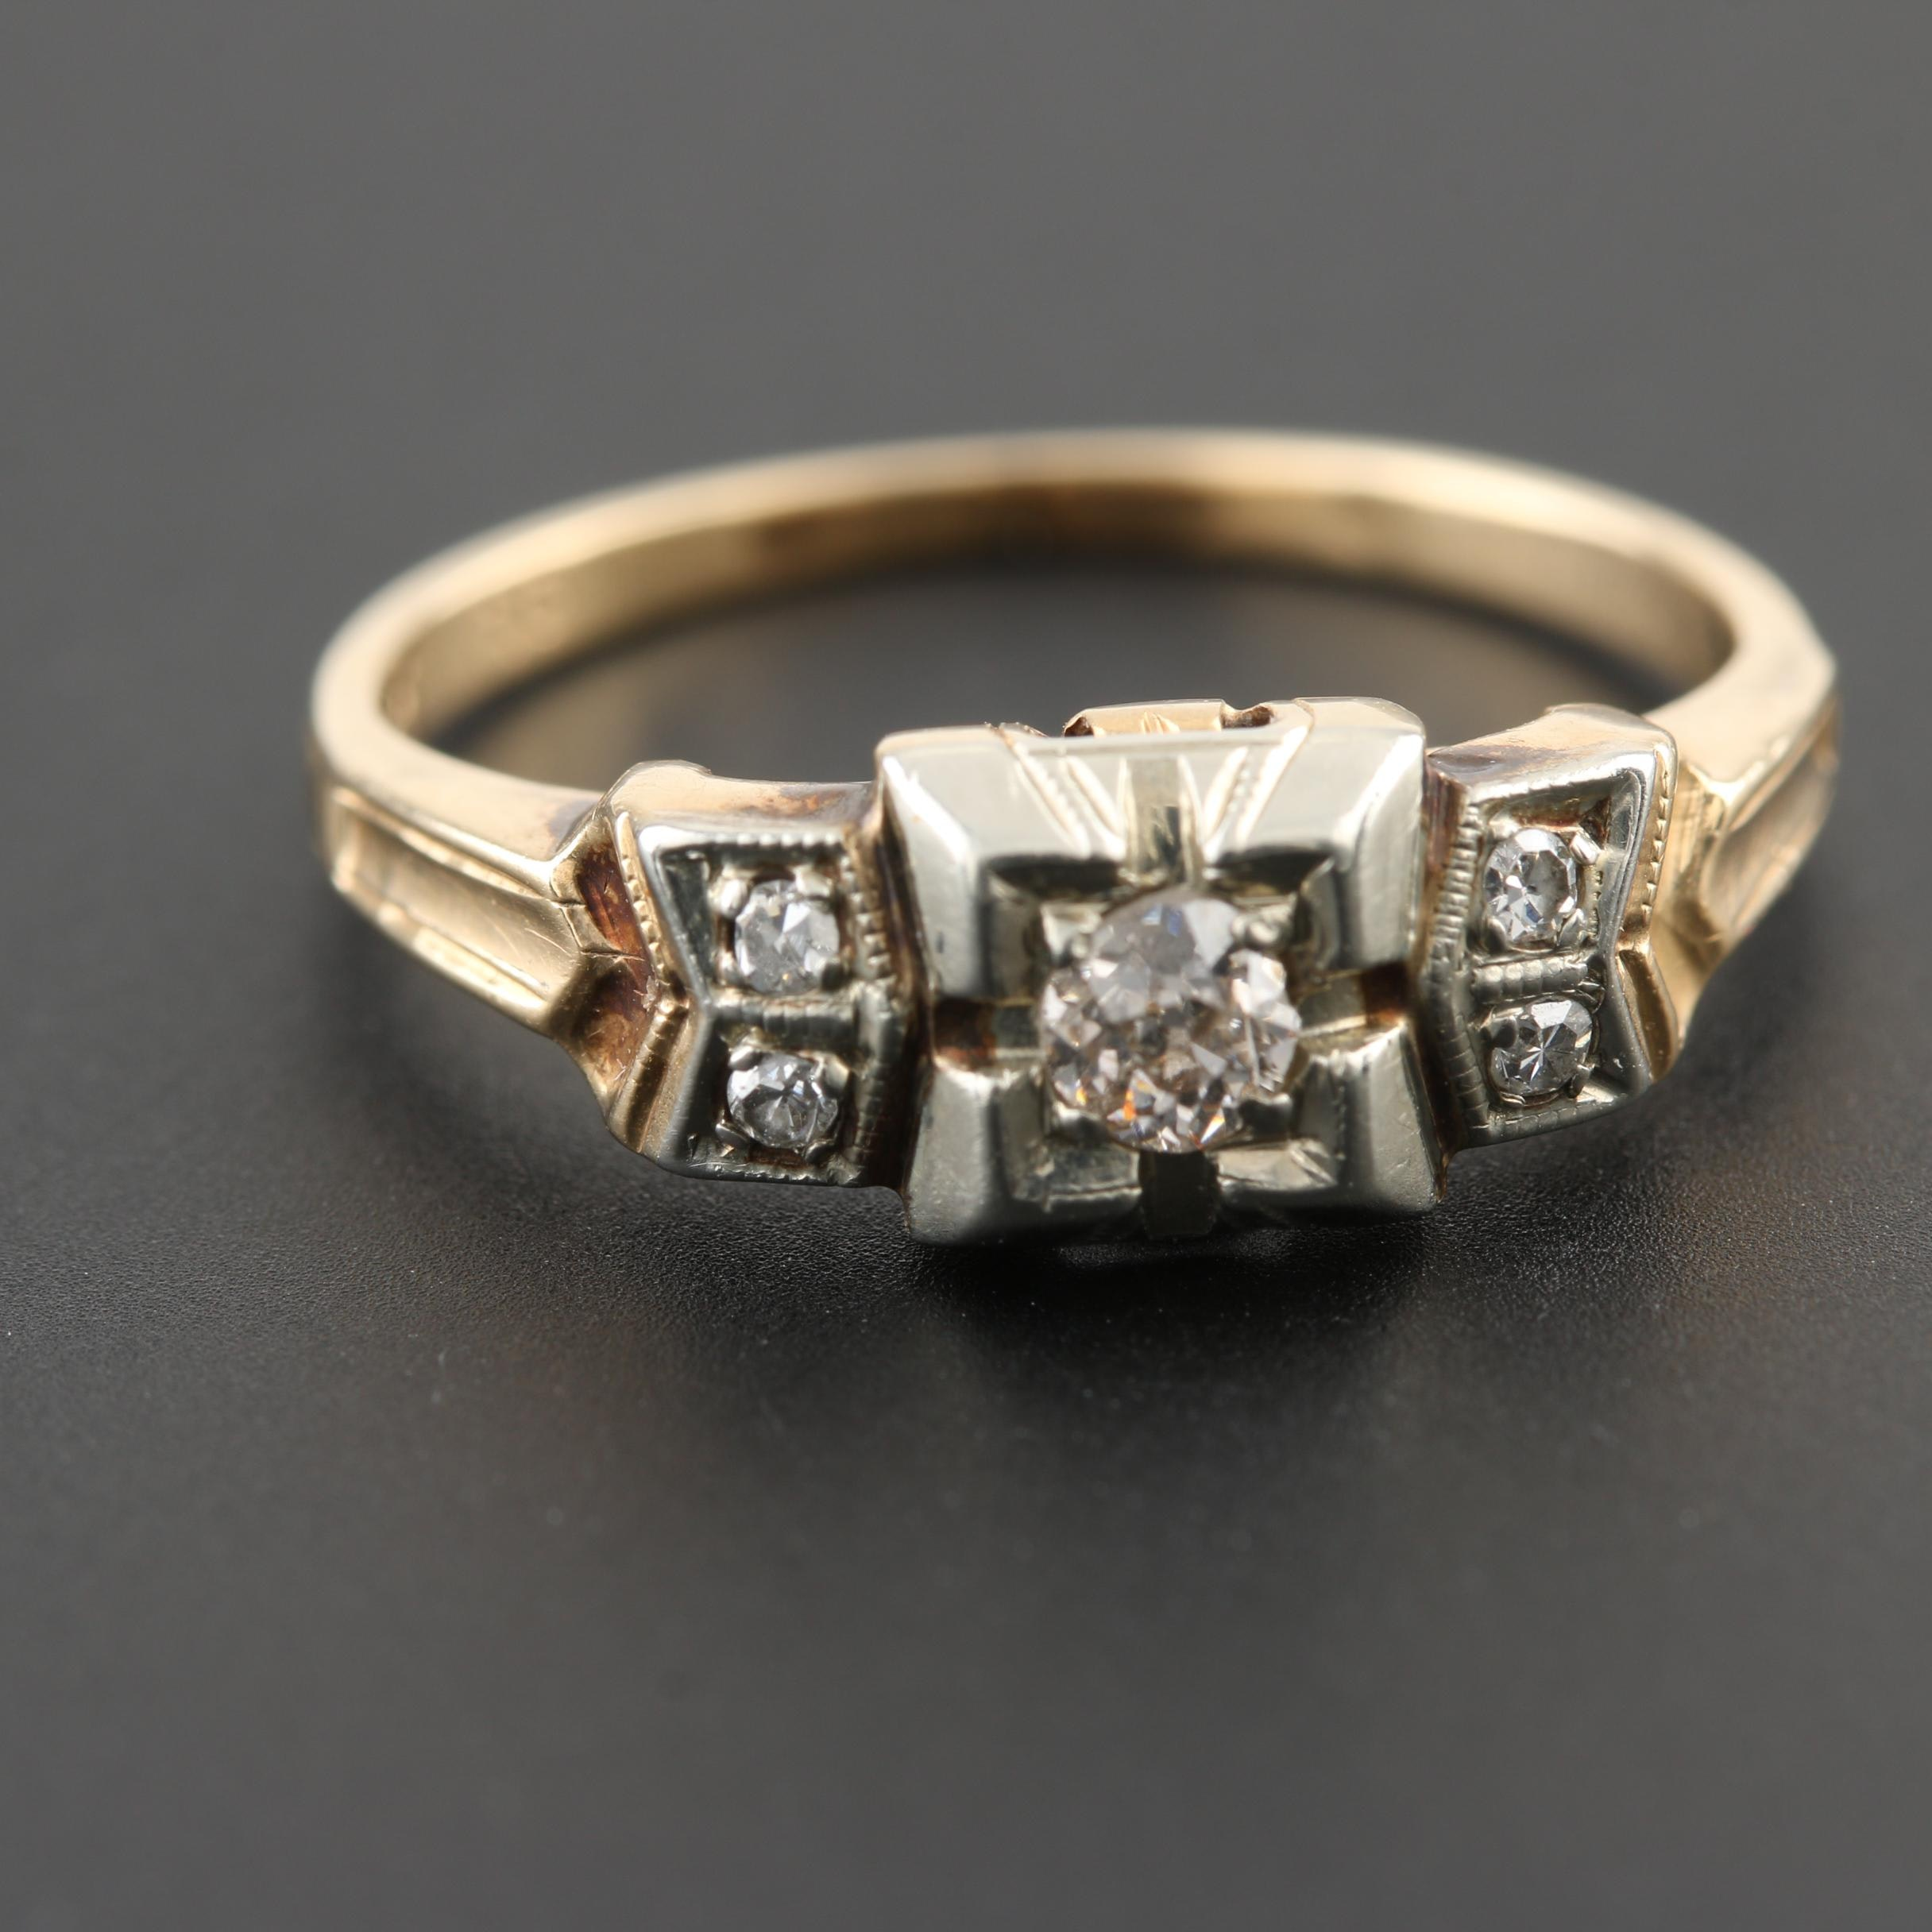 Late Edwardian 14K Yellow Gold Diamond Ring